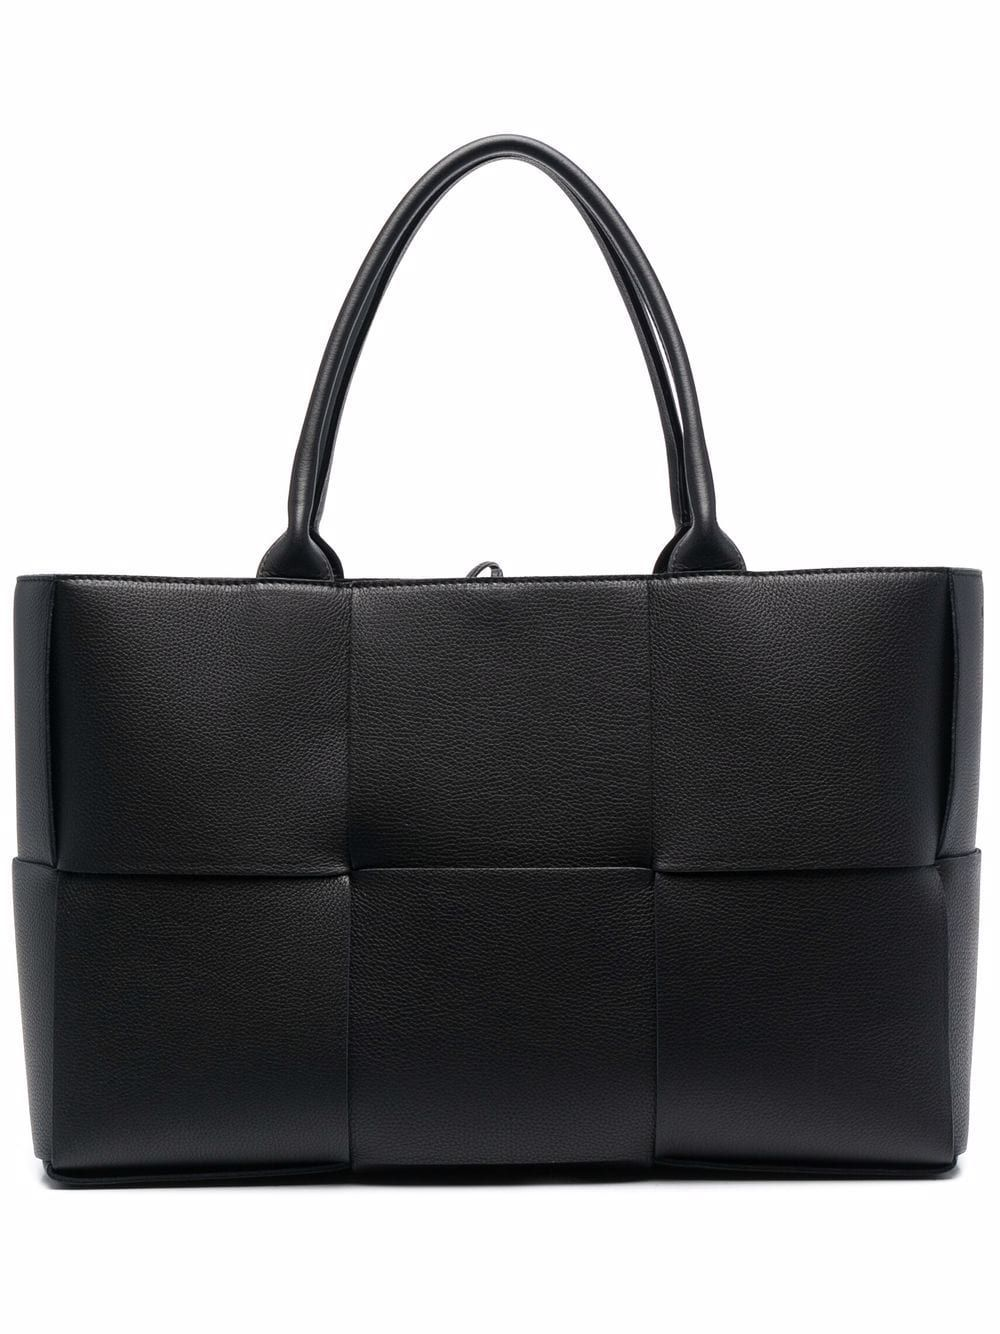 Arco leather shopping bag